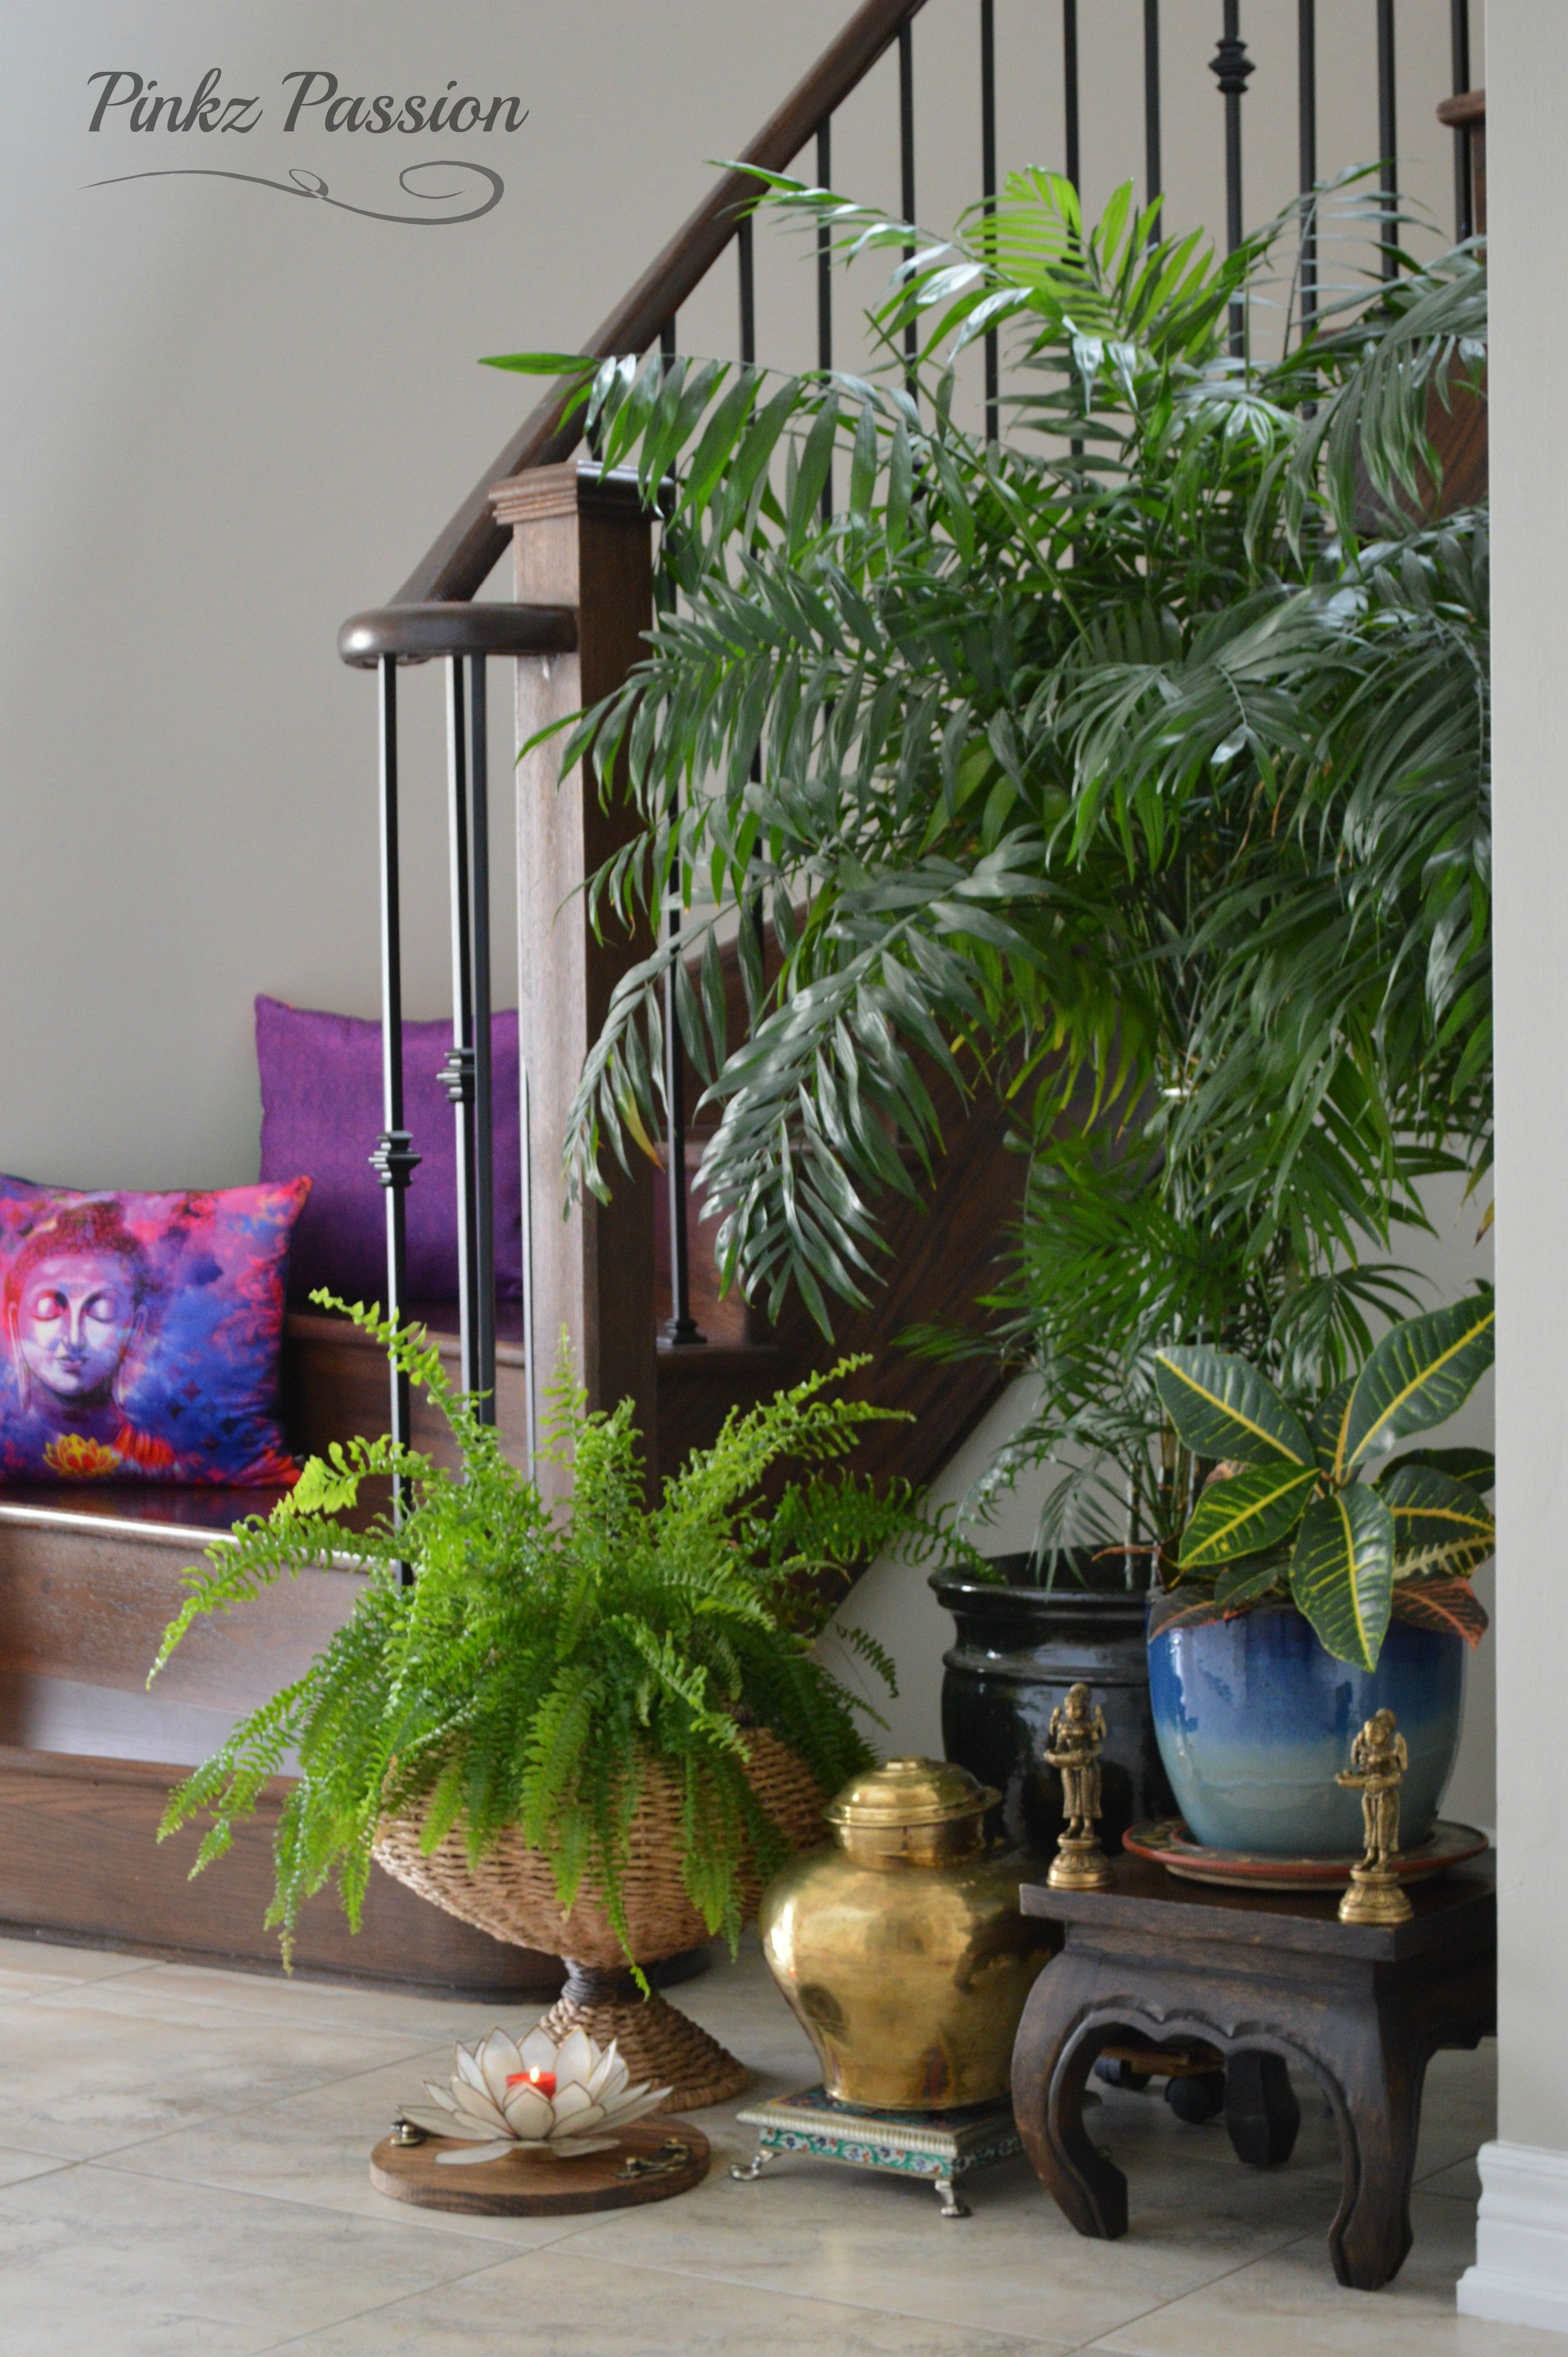 Home decor, staircase landing decor, plant styling, indoor